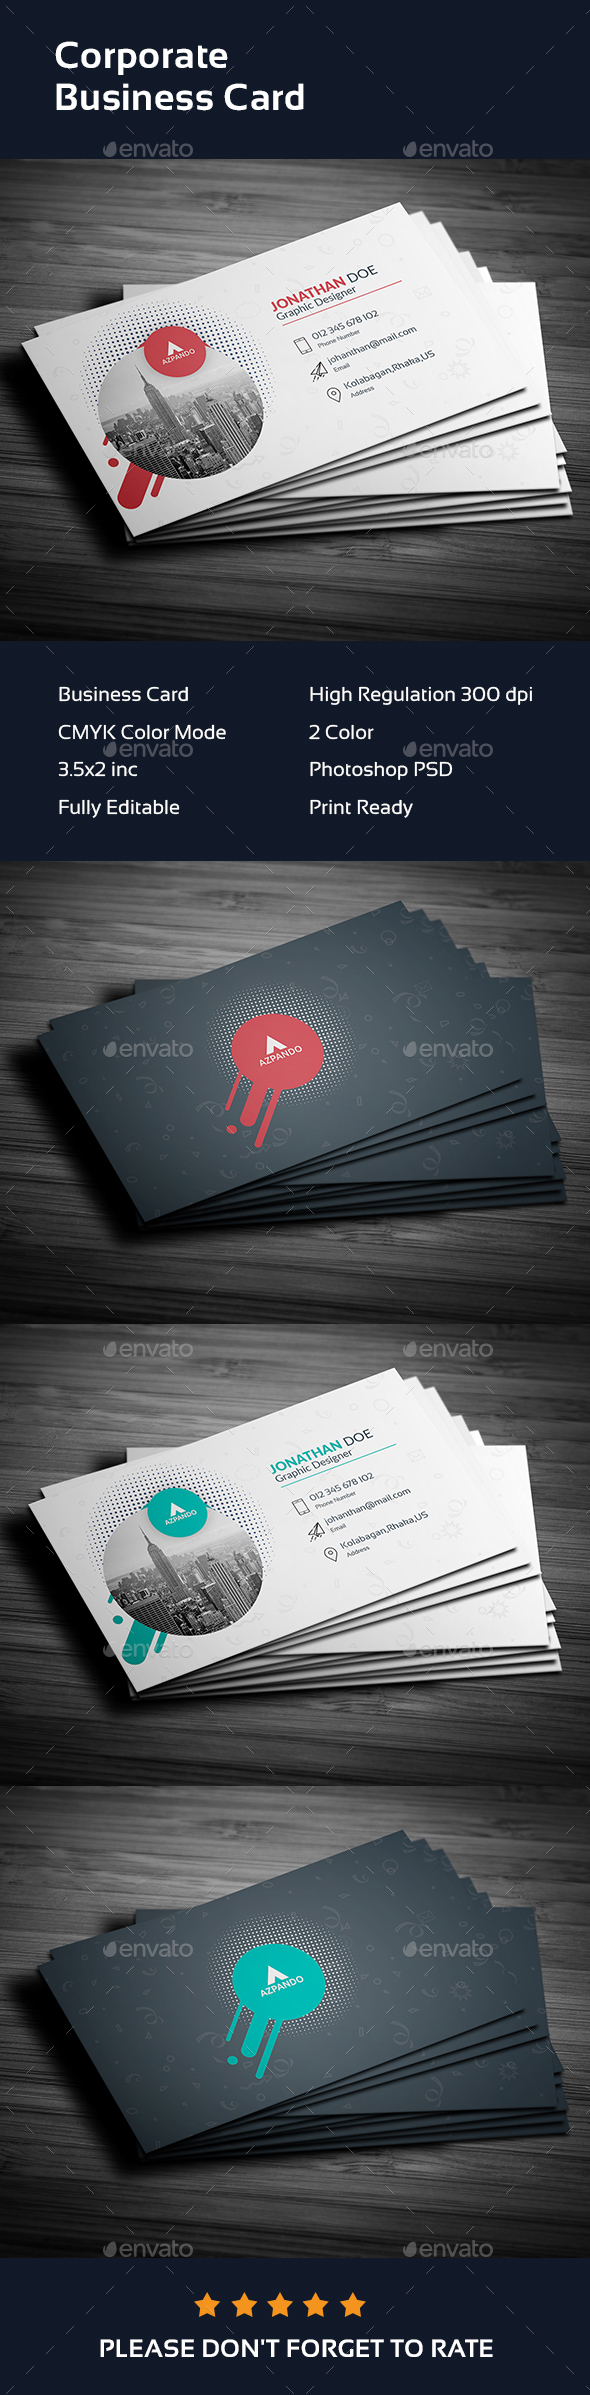 Business card templates designs from graphicriver reheart Images